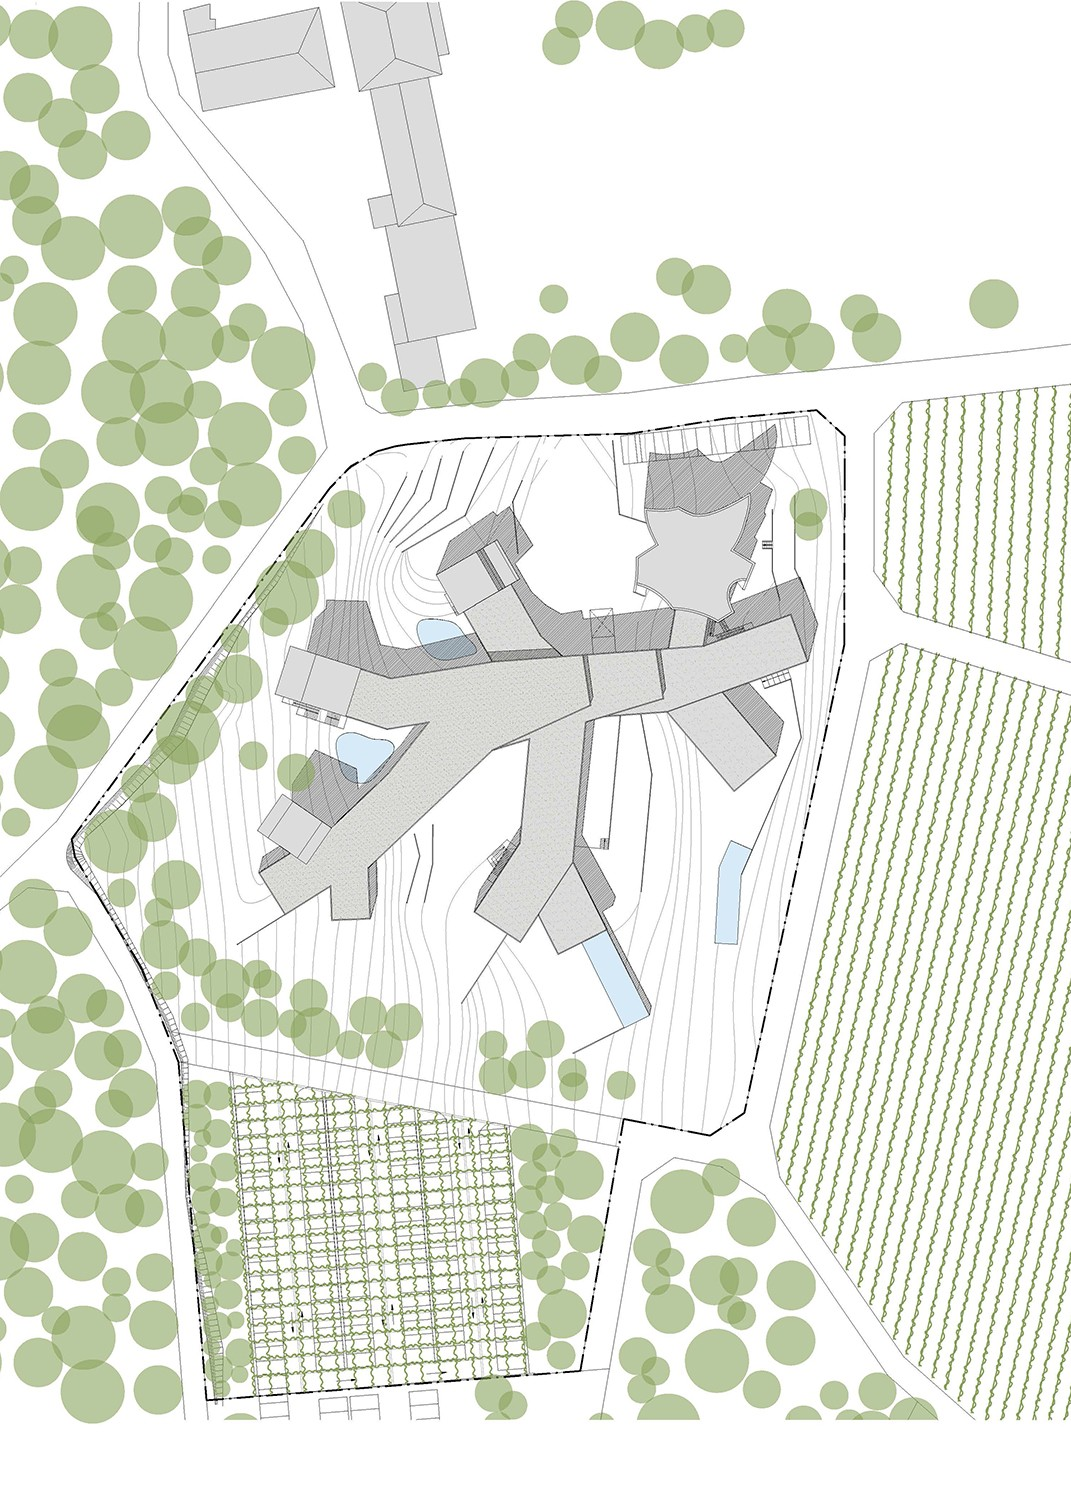 https://s3.us-east-2.amazonaws.com/steven-holl/uploads/projects/project-images/StevenHollArchitects_Alsace__siteplan_WV.jpg